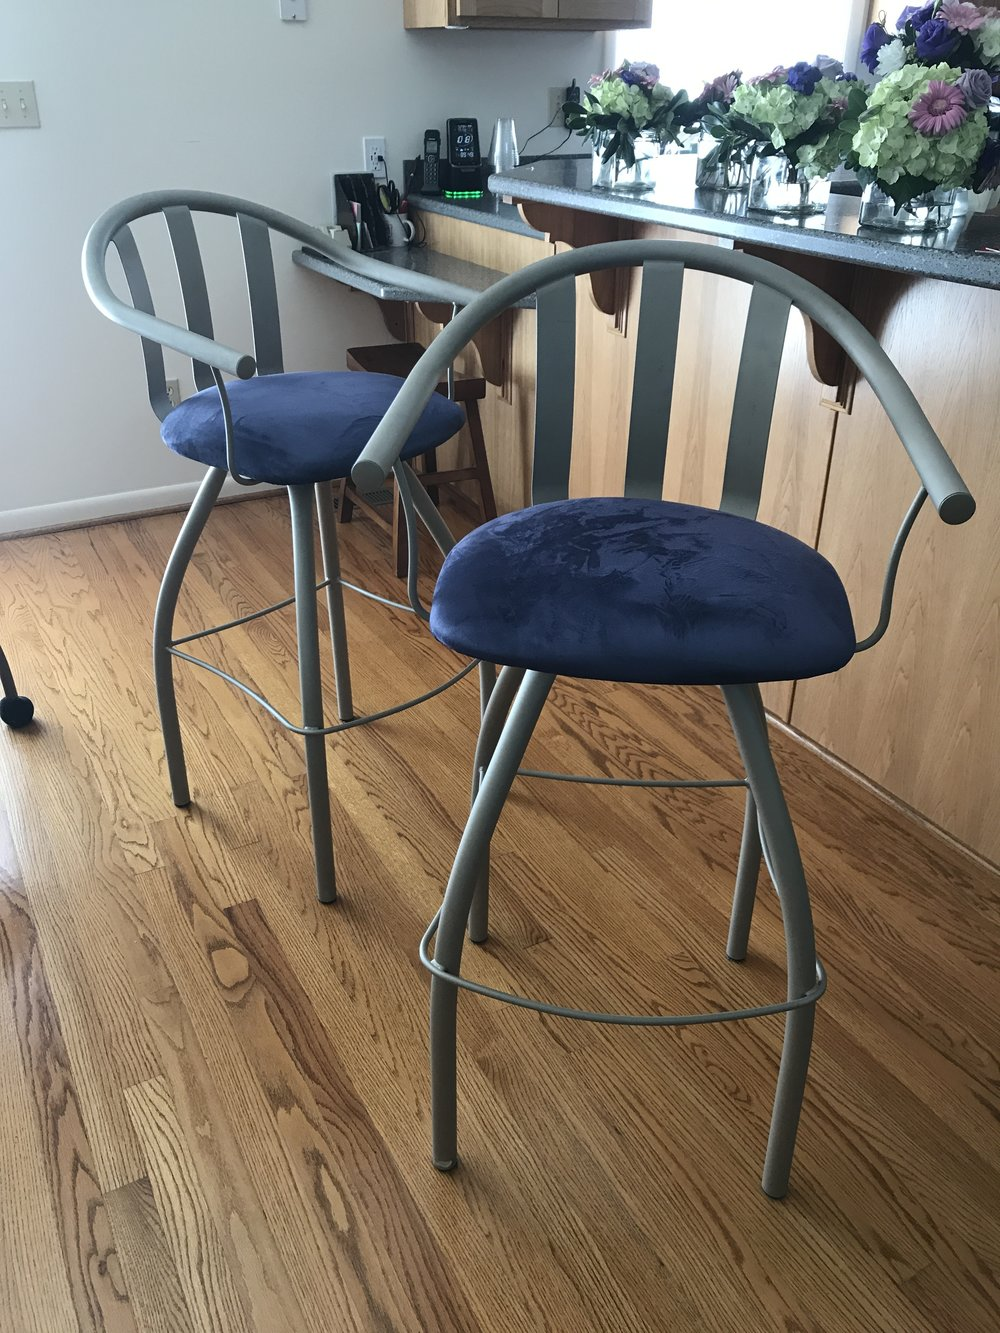 Contemporary Gallery Bars Stools